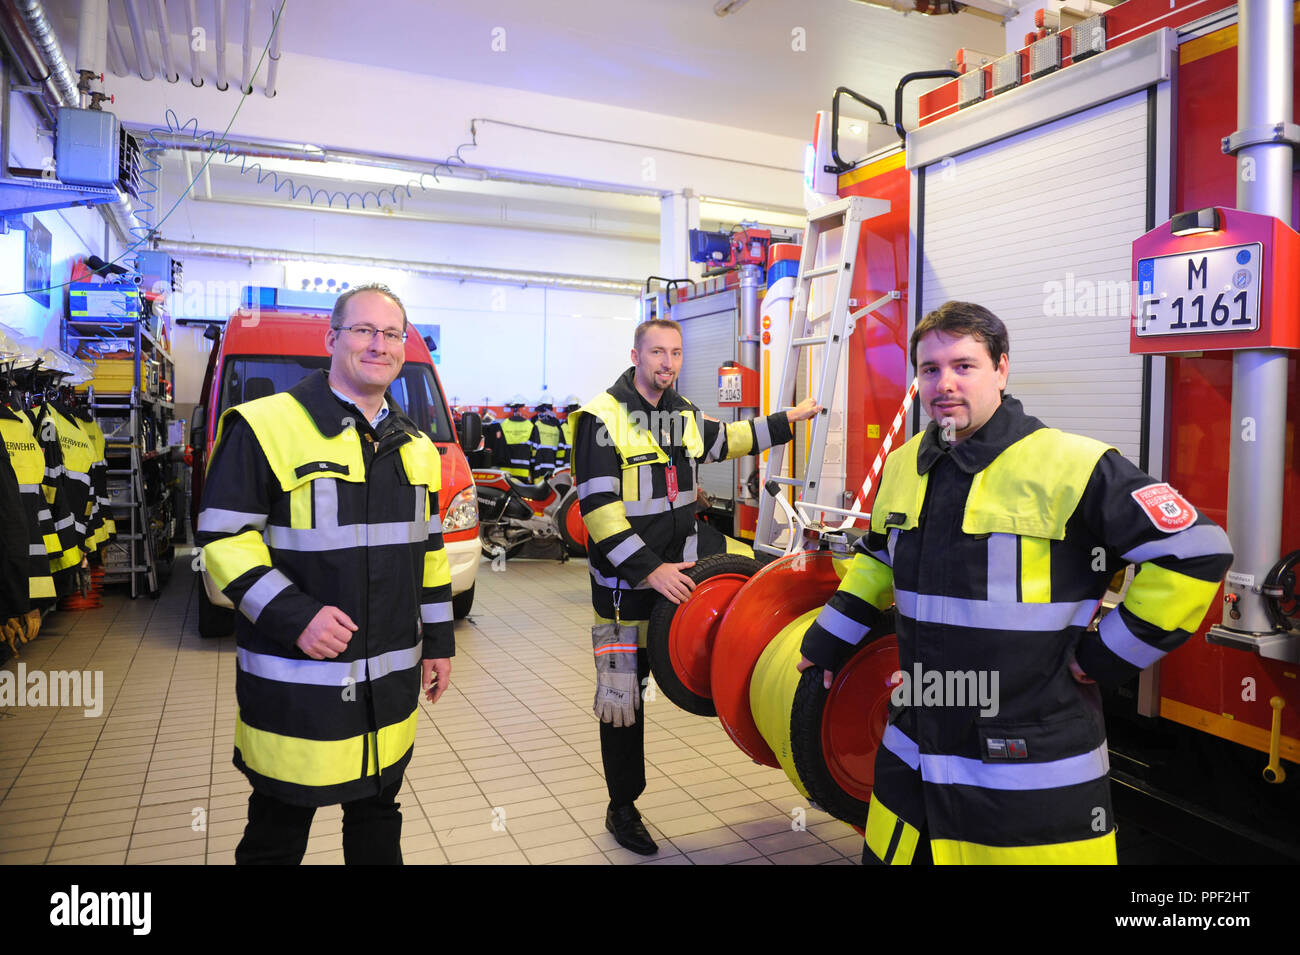 From left to right: Managing Director of volunteer firefighters Munich, Andreas Igl together with the Department Leaders of the Volunteer Fire Department Sebastian Meusel and Matthias Wolf in Sendling, Munich, Germany - Stock Image